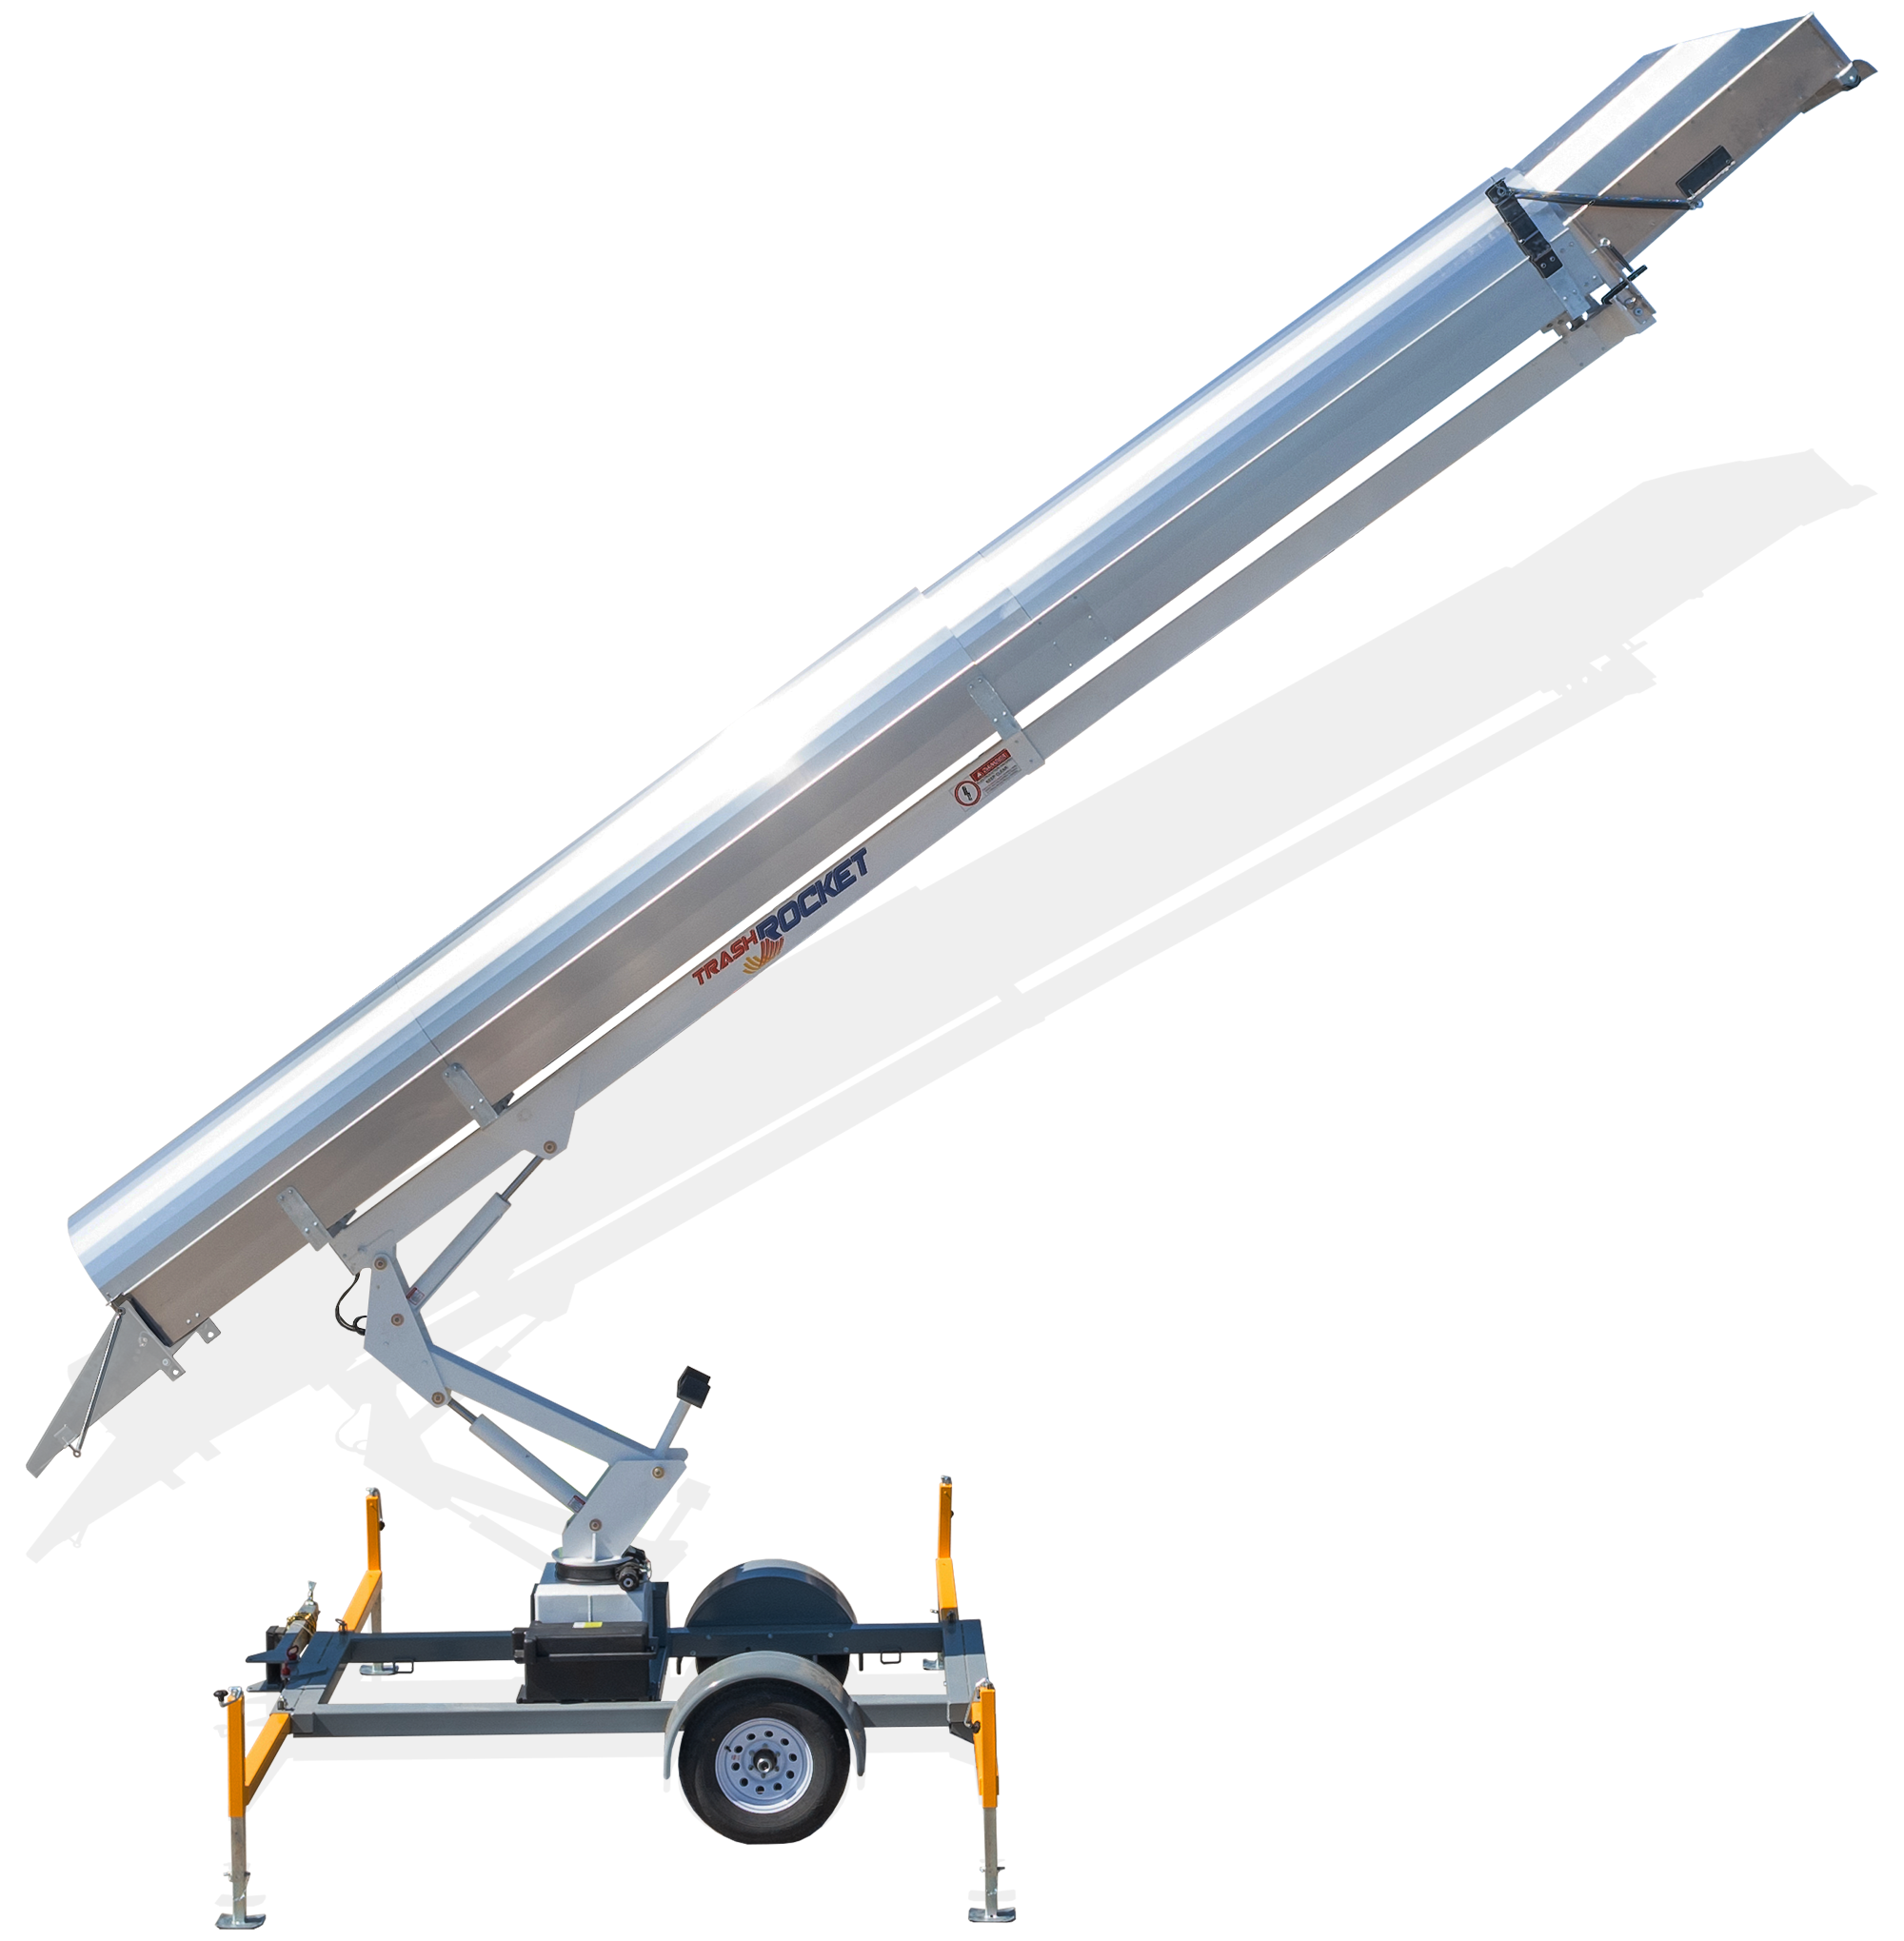 Rocket Equipment's Trash Rocket TR 3000 (Model TR3000) photo in extended position for use in residential roofing construction as mobile trash chute and debris disposal system